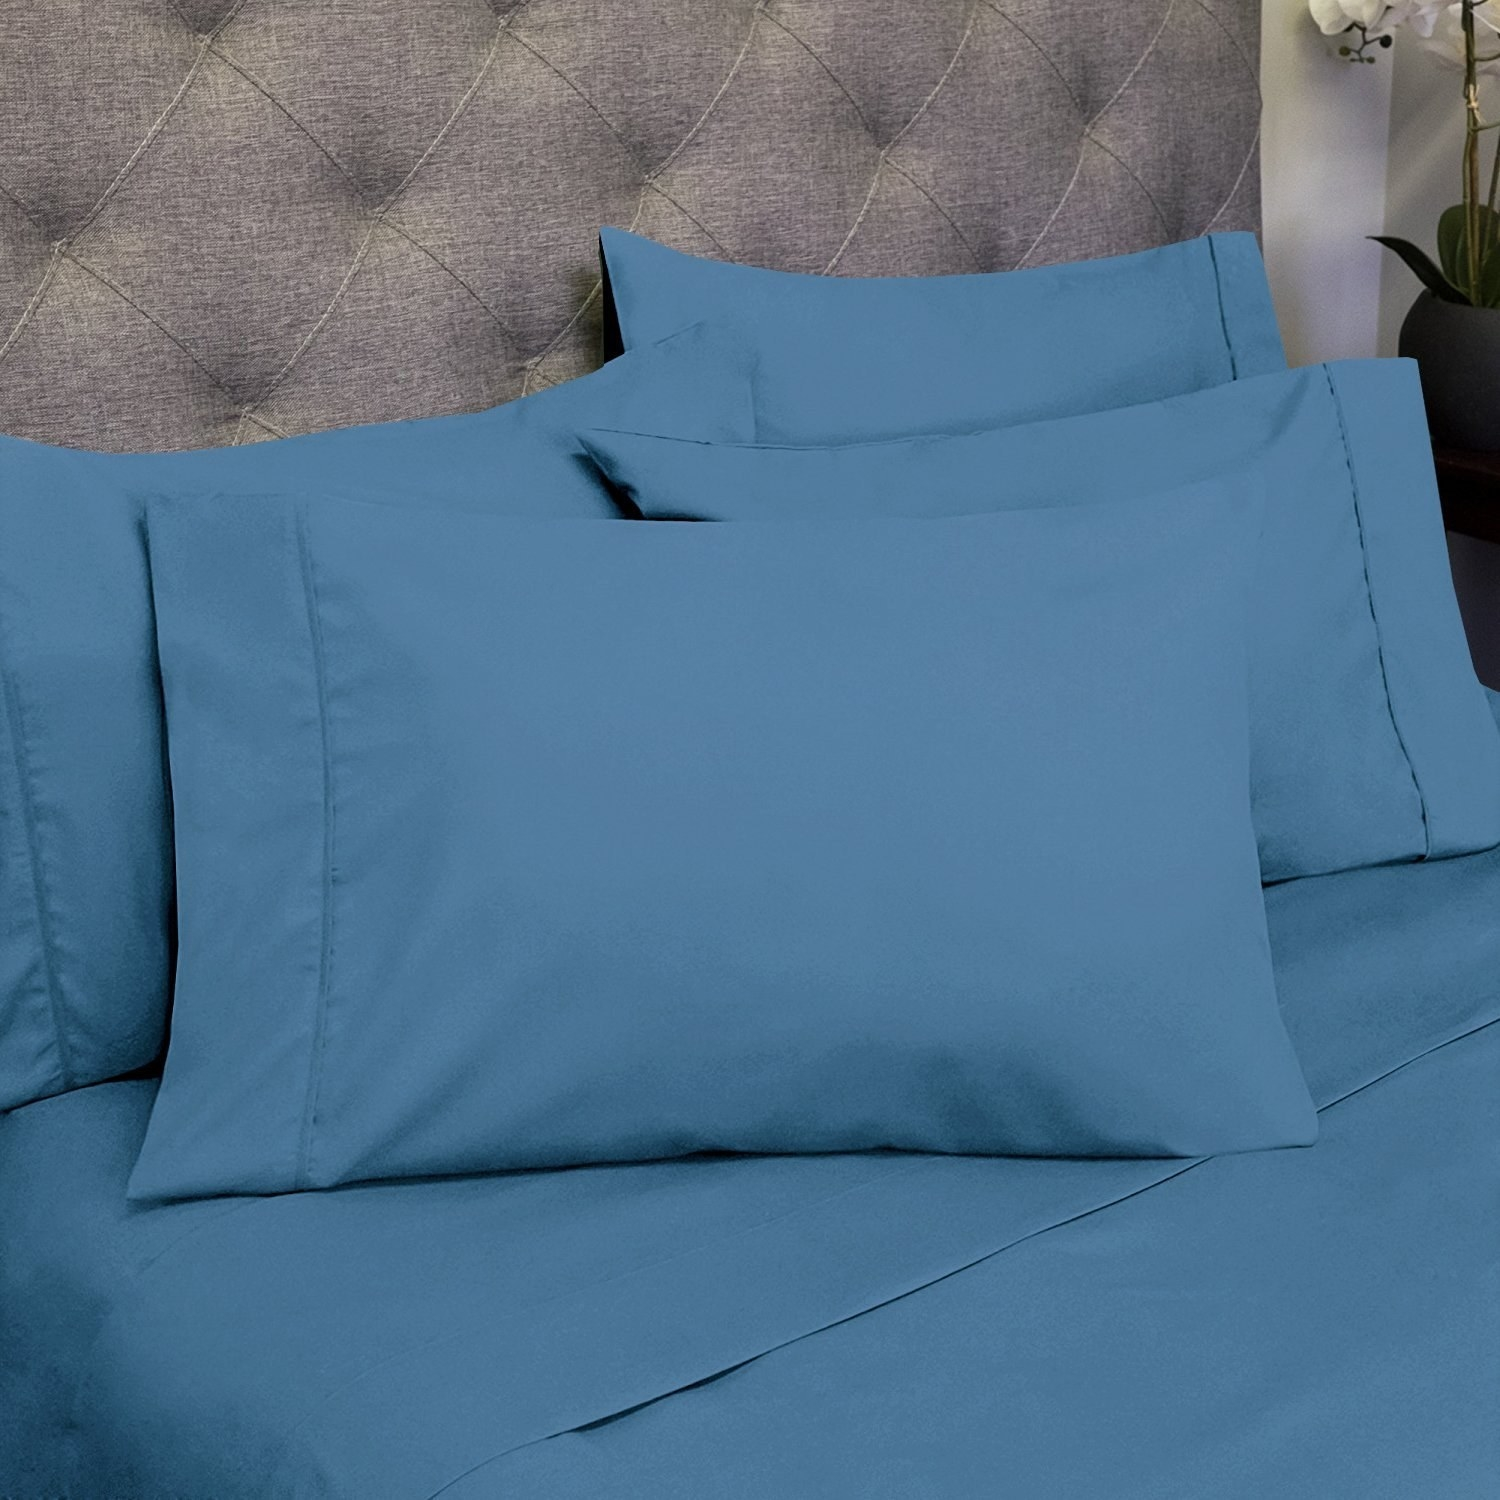 "The set includes a flat sheet, a fitted sheet and either two or four pillow cases depending on which size you choose. Promising review: ""There are times when you come across an item on Amazon and the price just shocks you to the point that you wade through 16 pages of reviews just because it feels like a trick. That's how I came across these in my never ending search for the perfect set of sheets. I have to tell you, I was way skeptical. Not that a thousand people could all be deluded and tricked me into buying something that turned out to be garbage, but because all sheets are not the same and what those thousand people love, I could very well hate and just not get what there is to love about them. I have to admit, though, I am impressed. These sheets are well made and no matter how many times I have washed them, they still come out of the dryer looking like they were just ironed. I've had no problems with pilling or fading. They fit our king size bed wonderfully and the color is stunning. I would not hesitate to buy more in the future."" —CBPrice: $24+ (available in 39 colors and six sizes)"